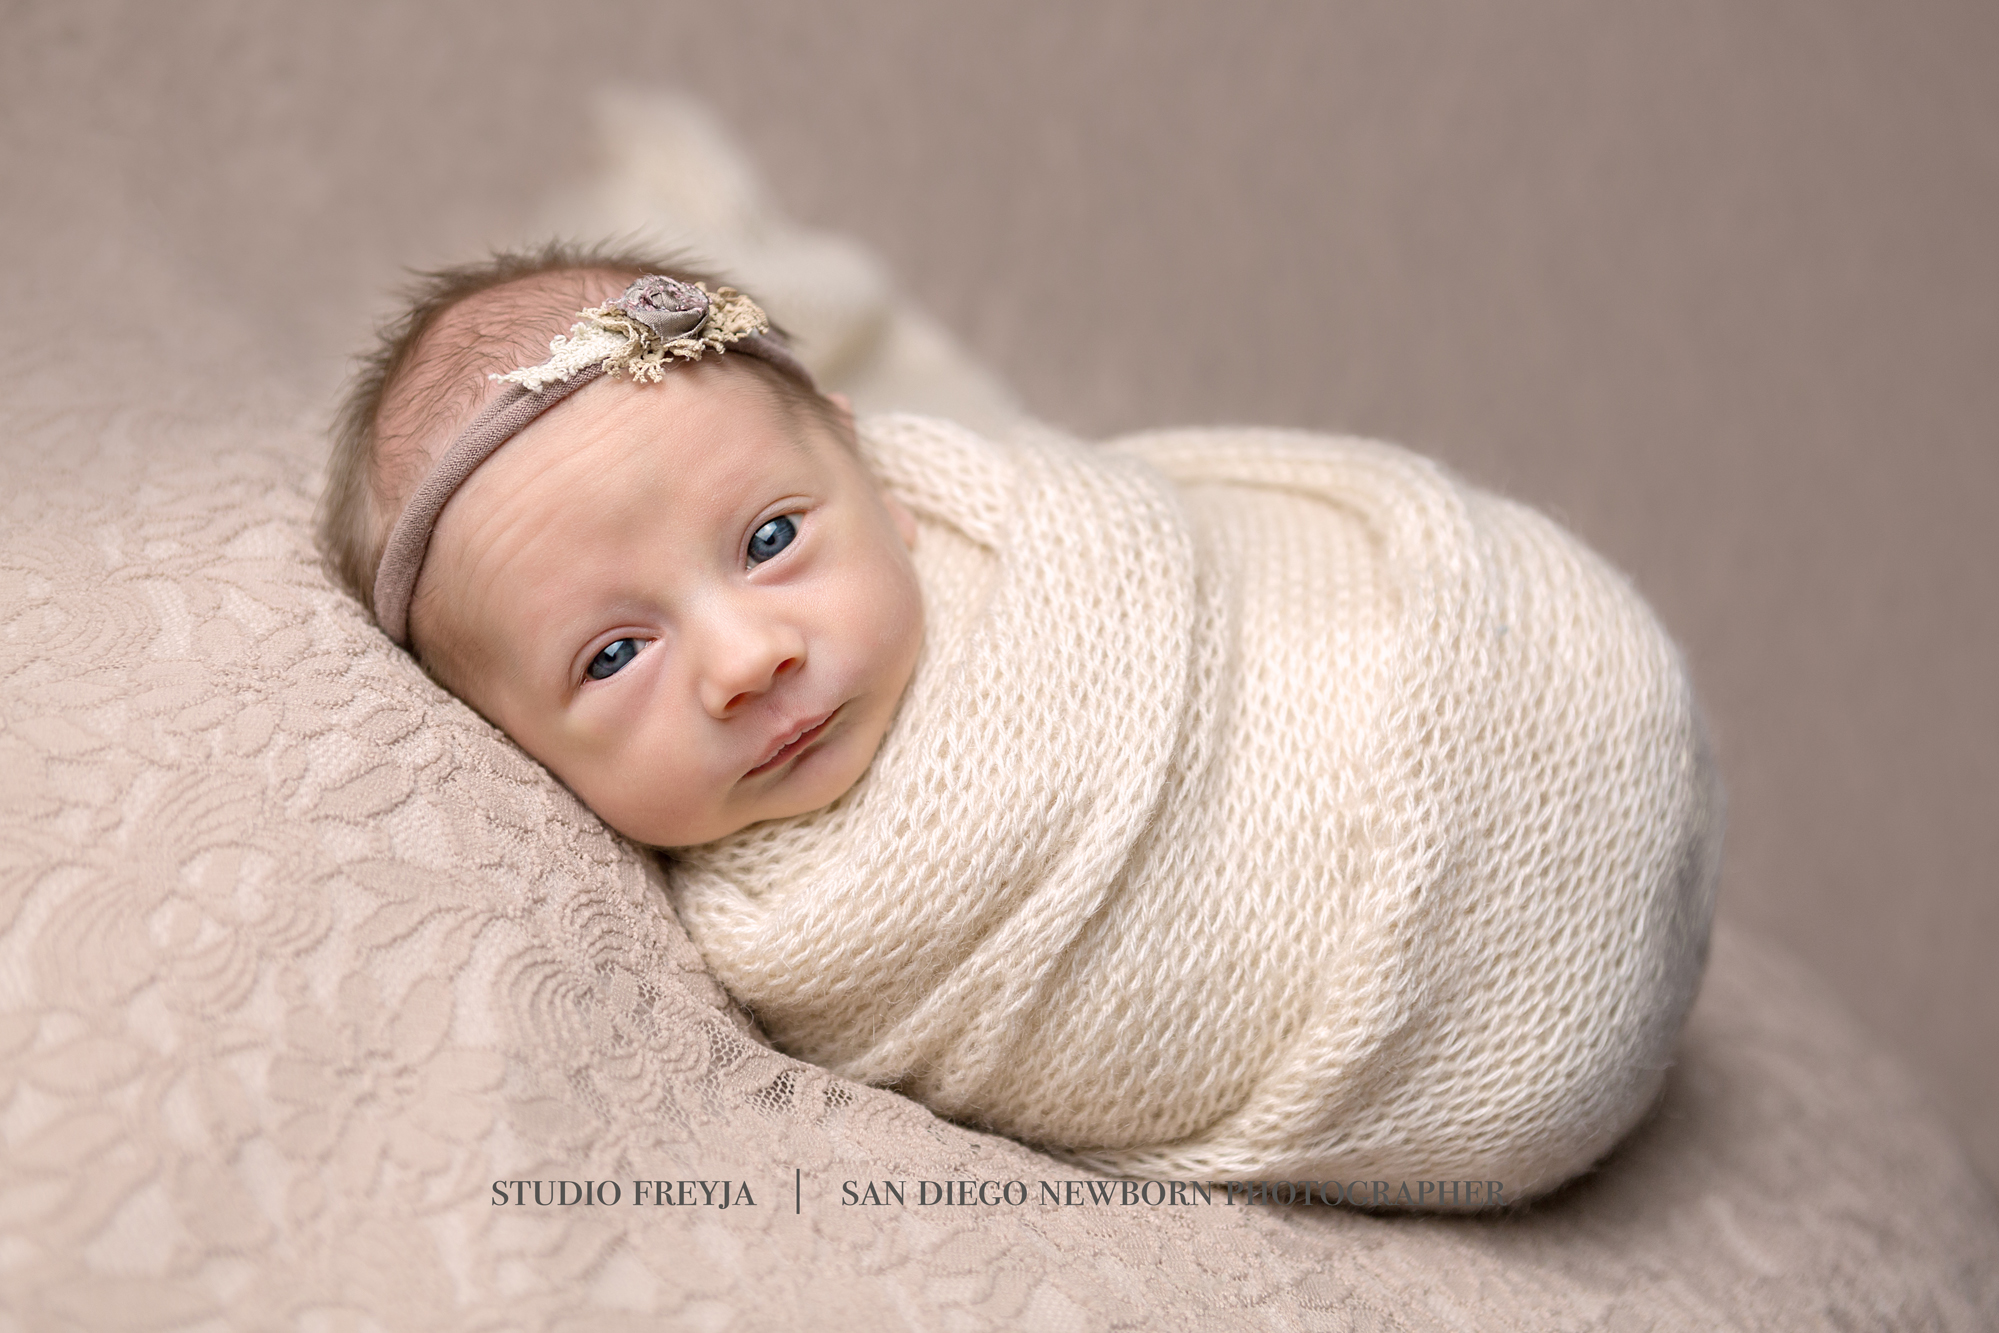 San Diego Newborn Session